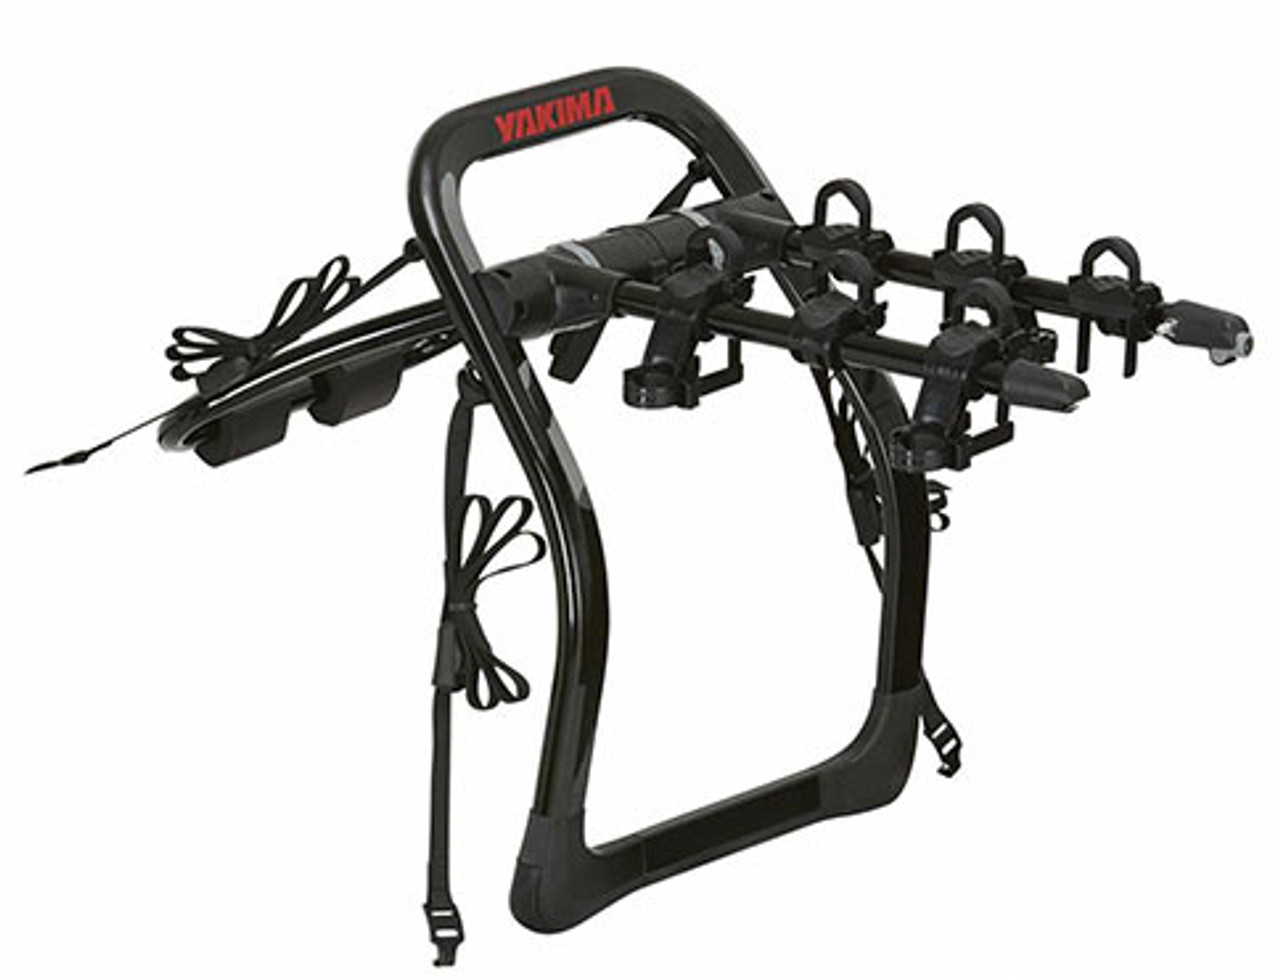 Yakima Fullback Trunk Bike Rack